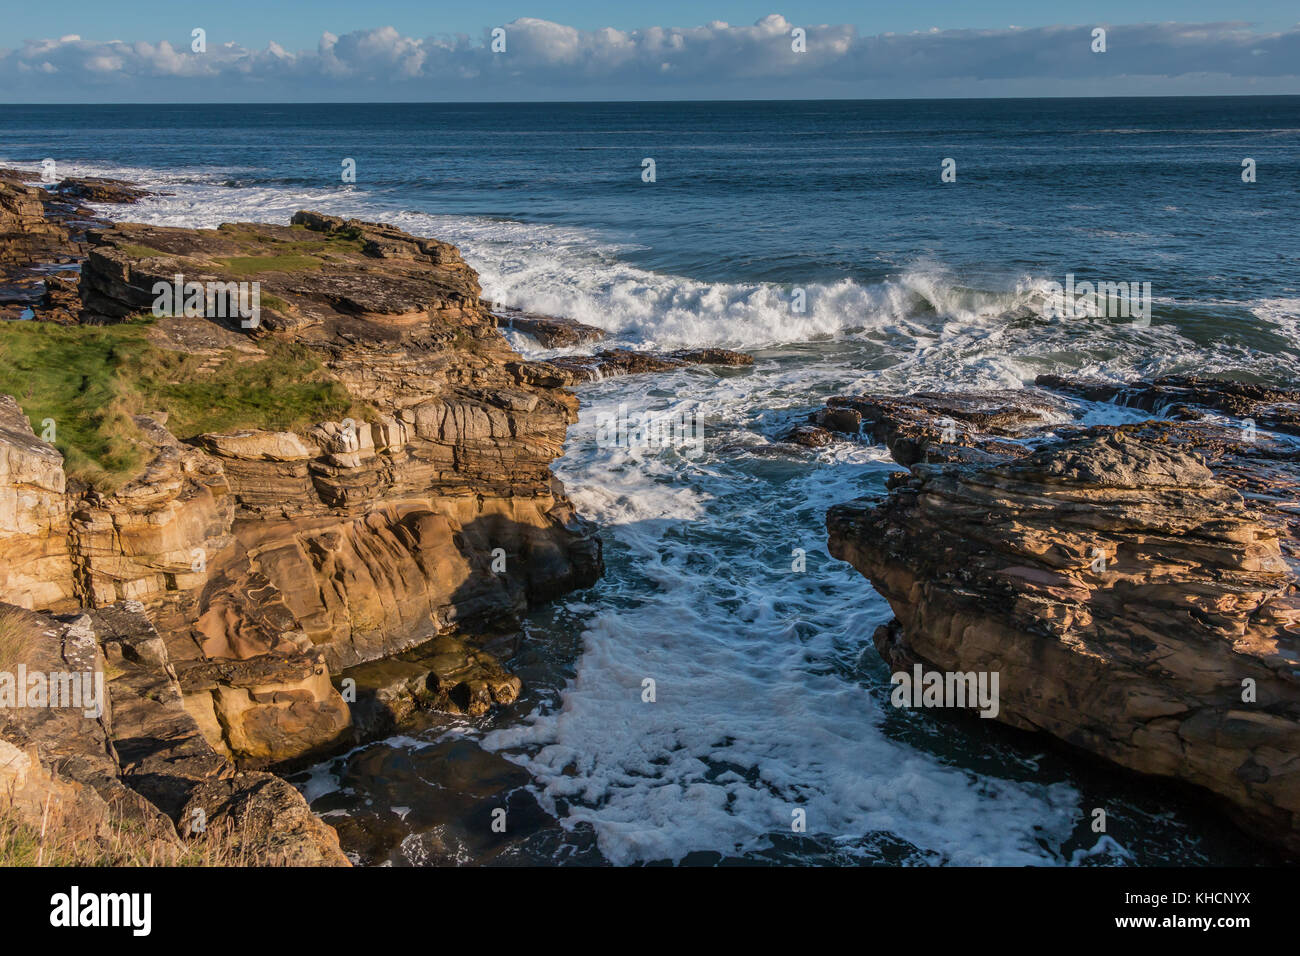 A rocky cove on the Northumberland coast known as Rumbling Kern, near Howick, in bright winter sunshine, November - Stock Image